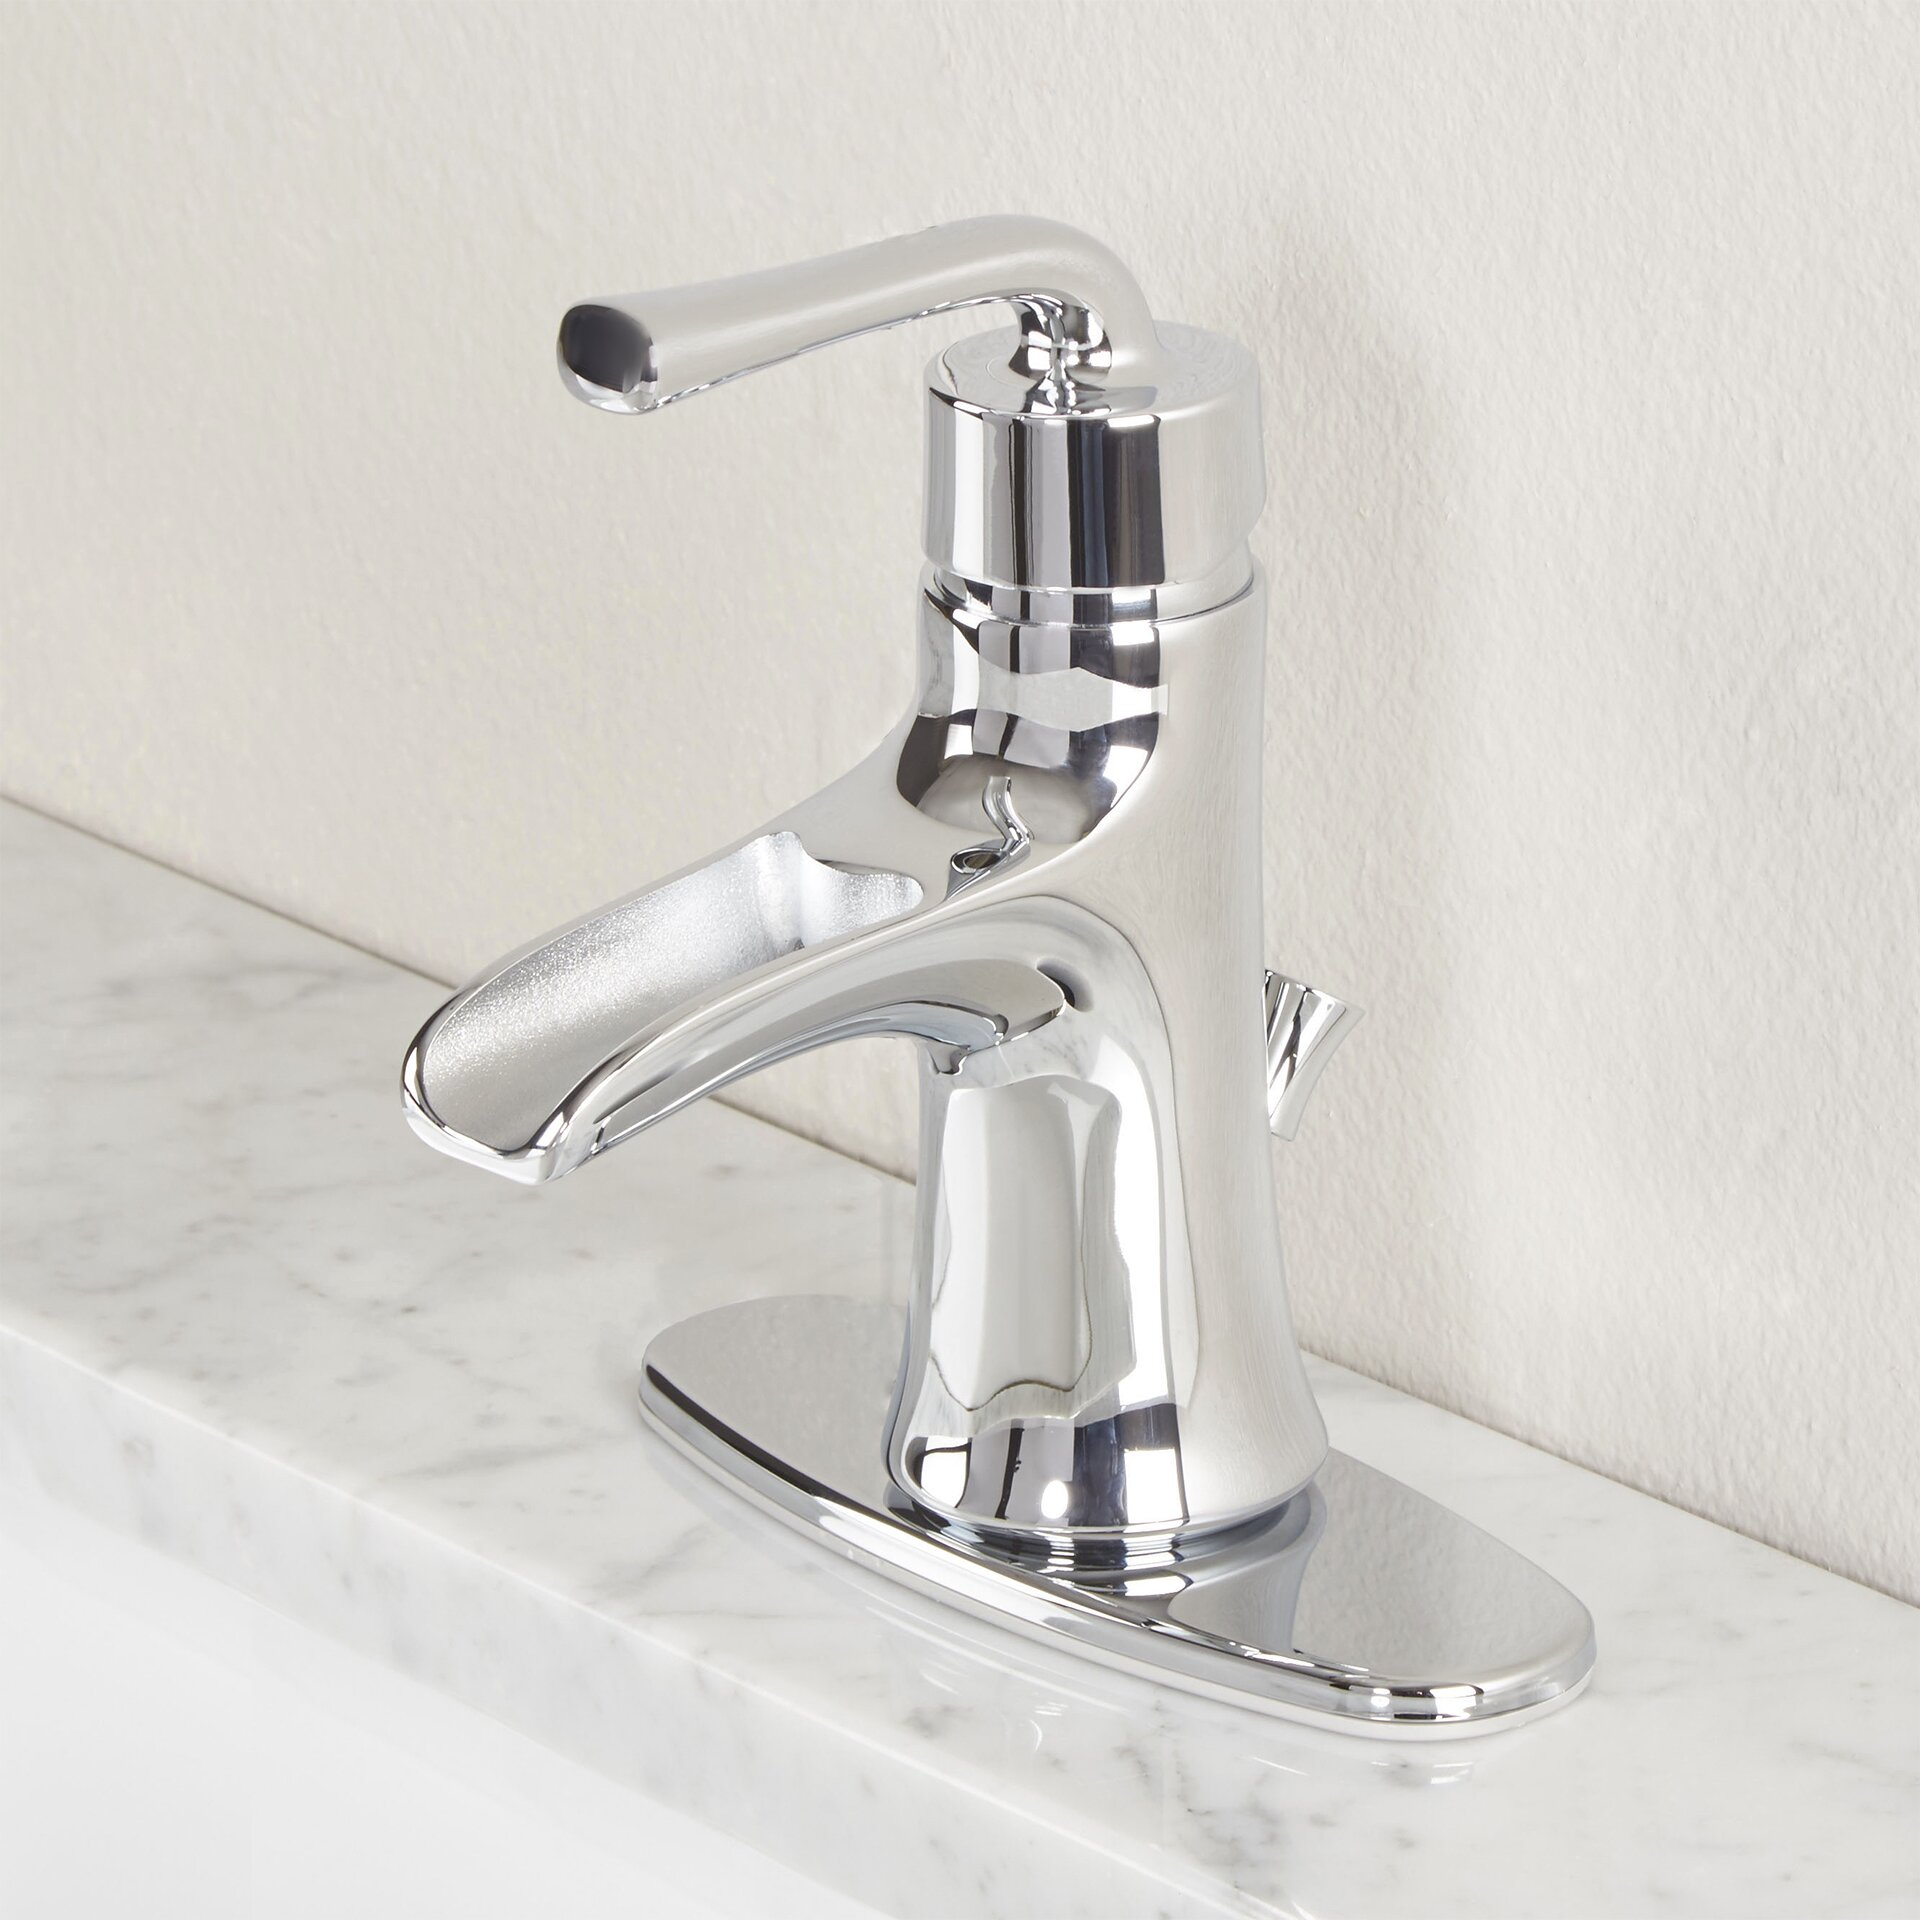 Bathroom Fixtures ... Single Hole Bathroom Sink Faucets Premier Faucet ...